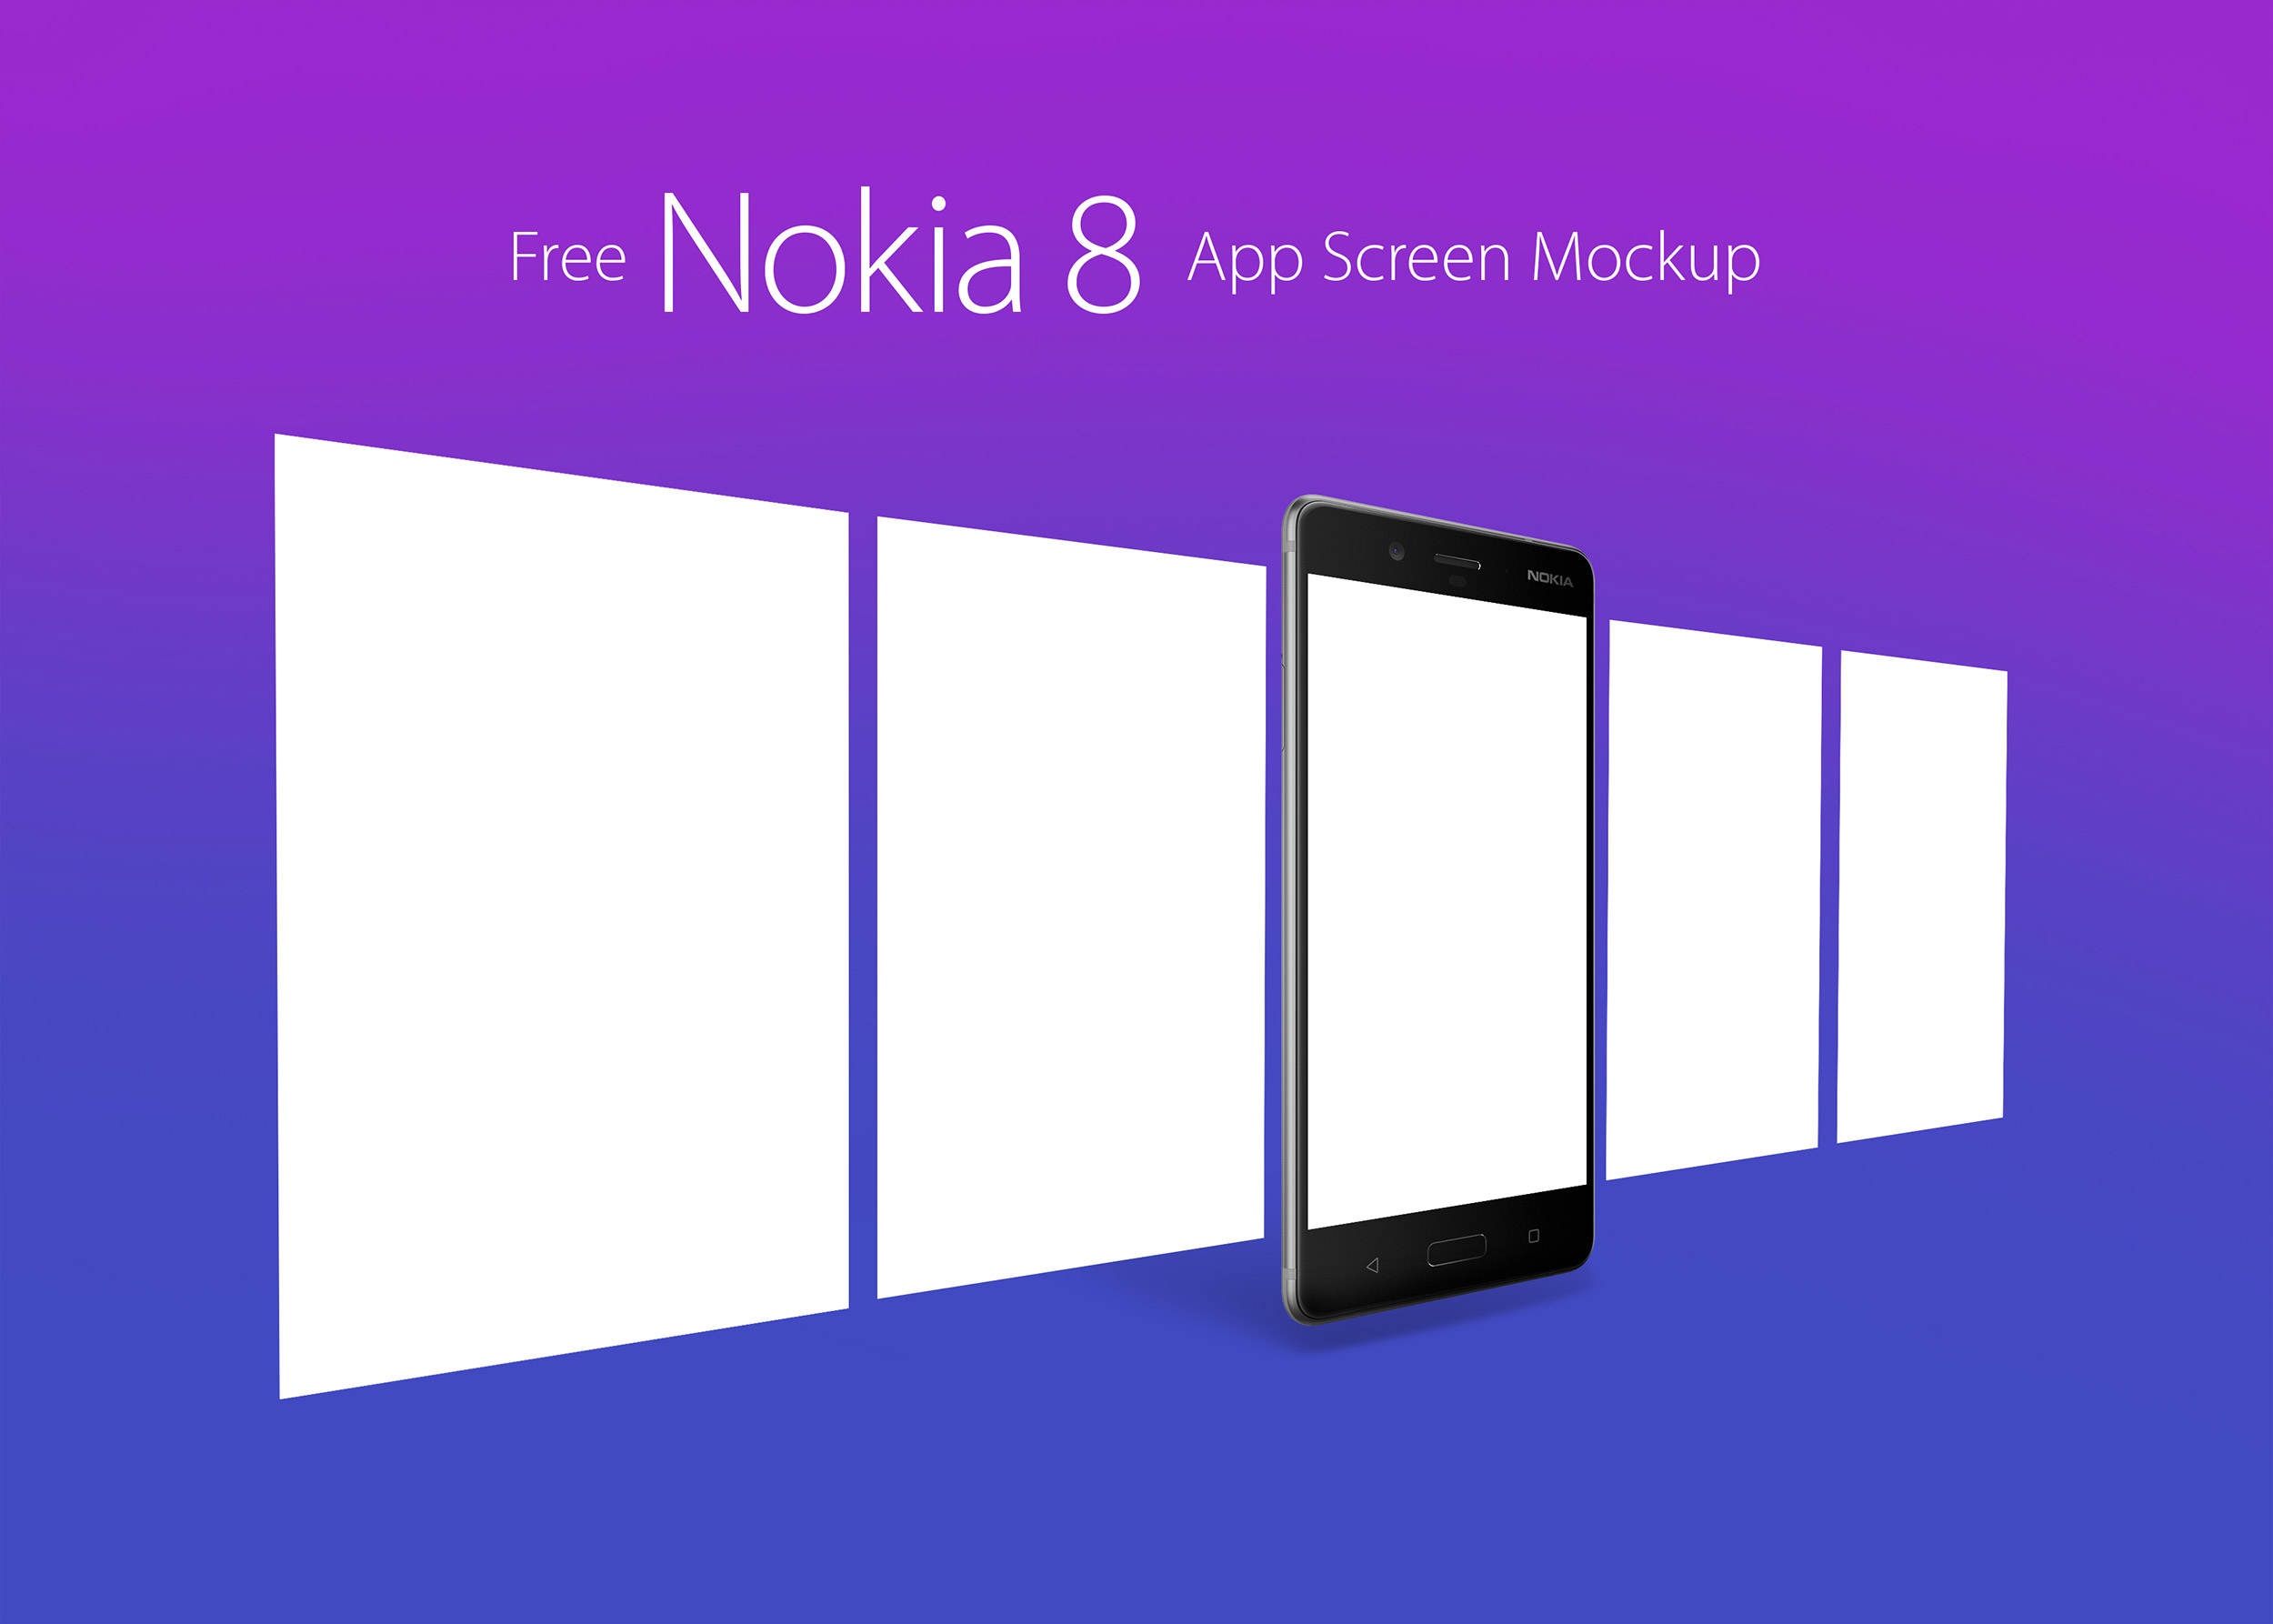 Free-Nokia-8-Andriod-Smartphone-App-Screen-Mockup-PSD-3